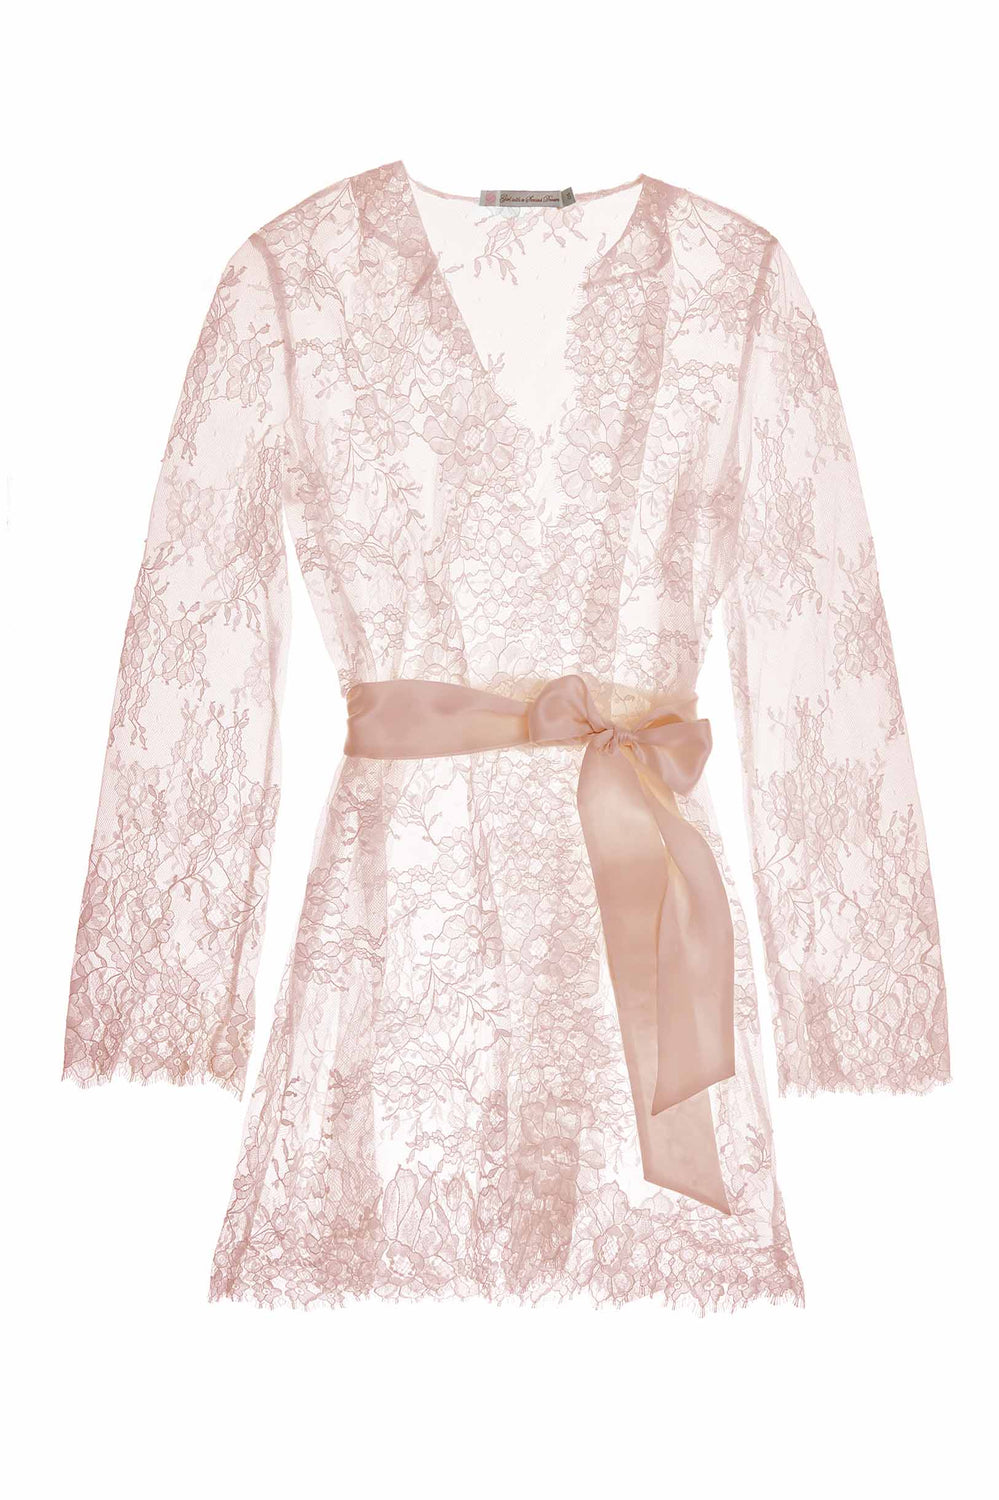 94ad2ca726 Camellia lace robe in Rose pink – GirlandaSeriousDream.com